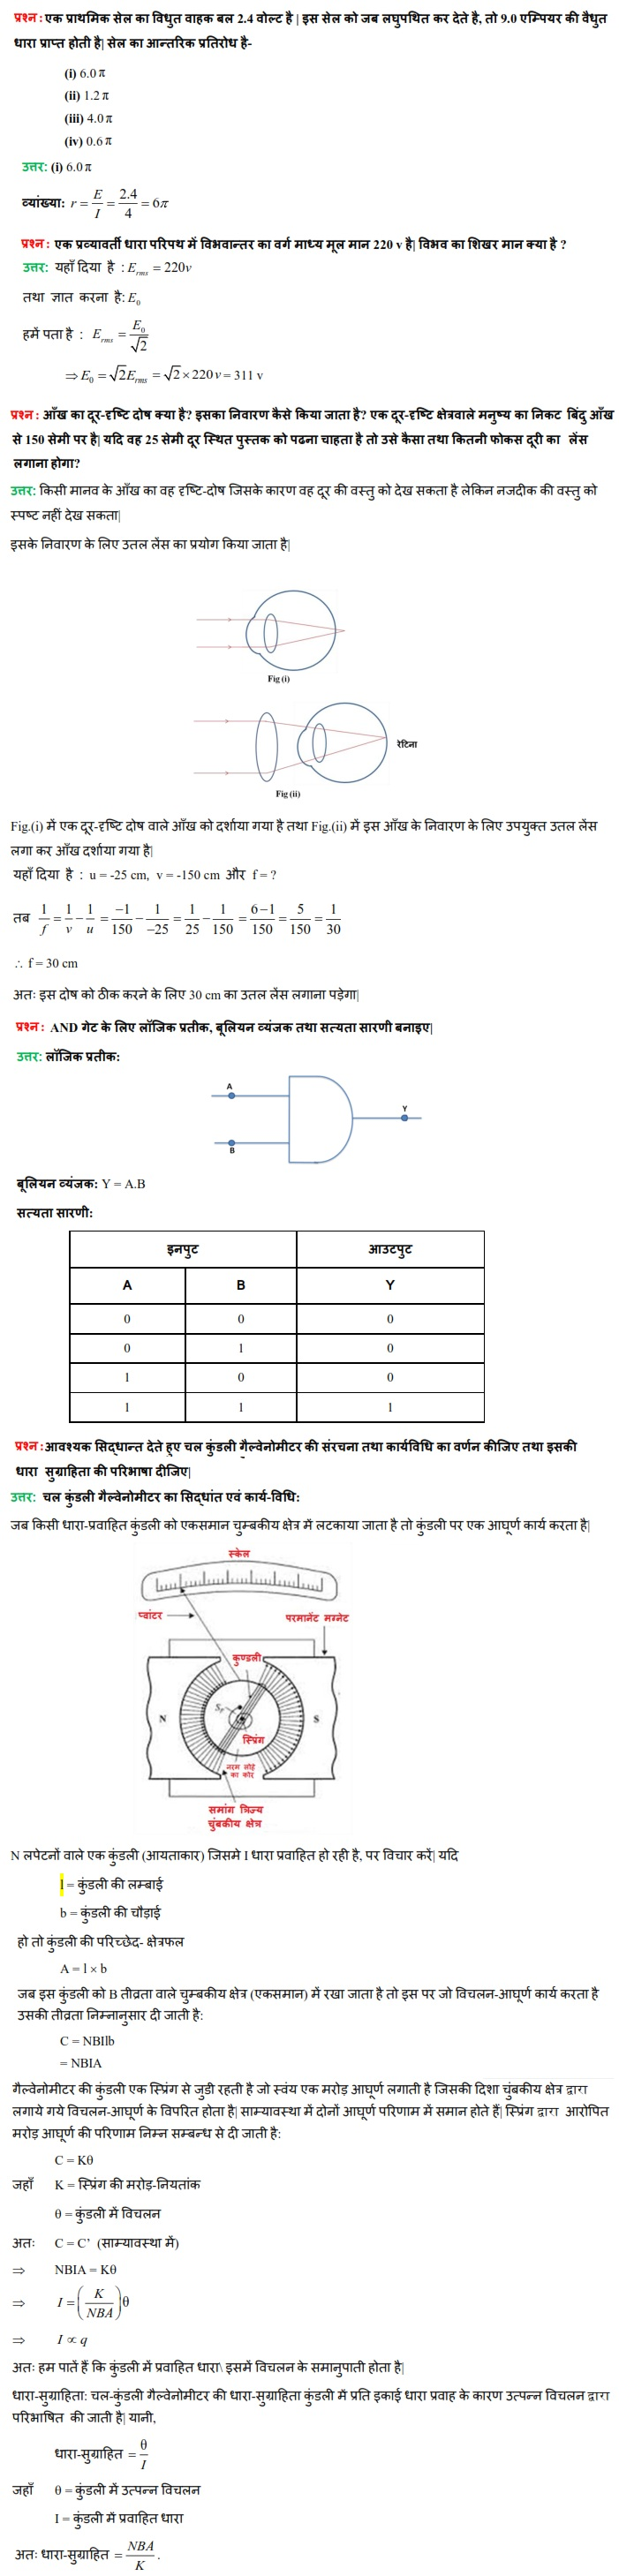 up board class th physics ii solved question paper  click here to get the complete solved paper